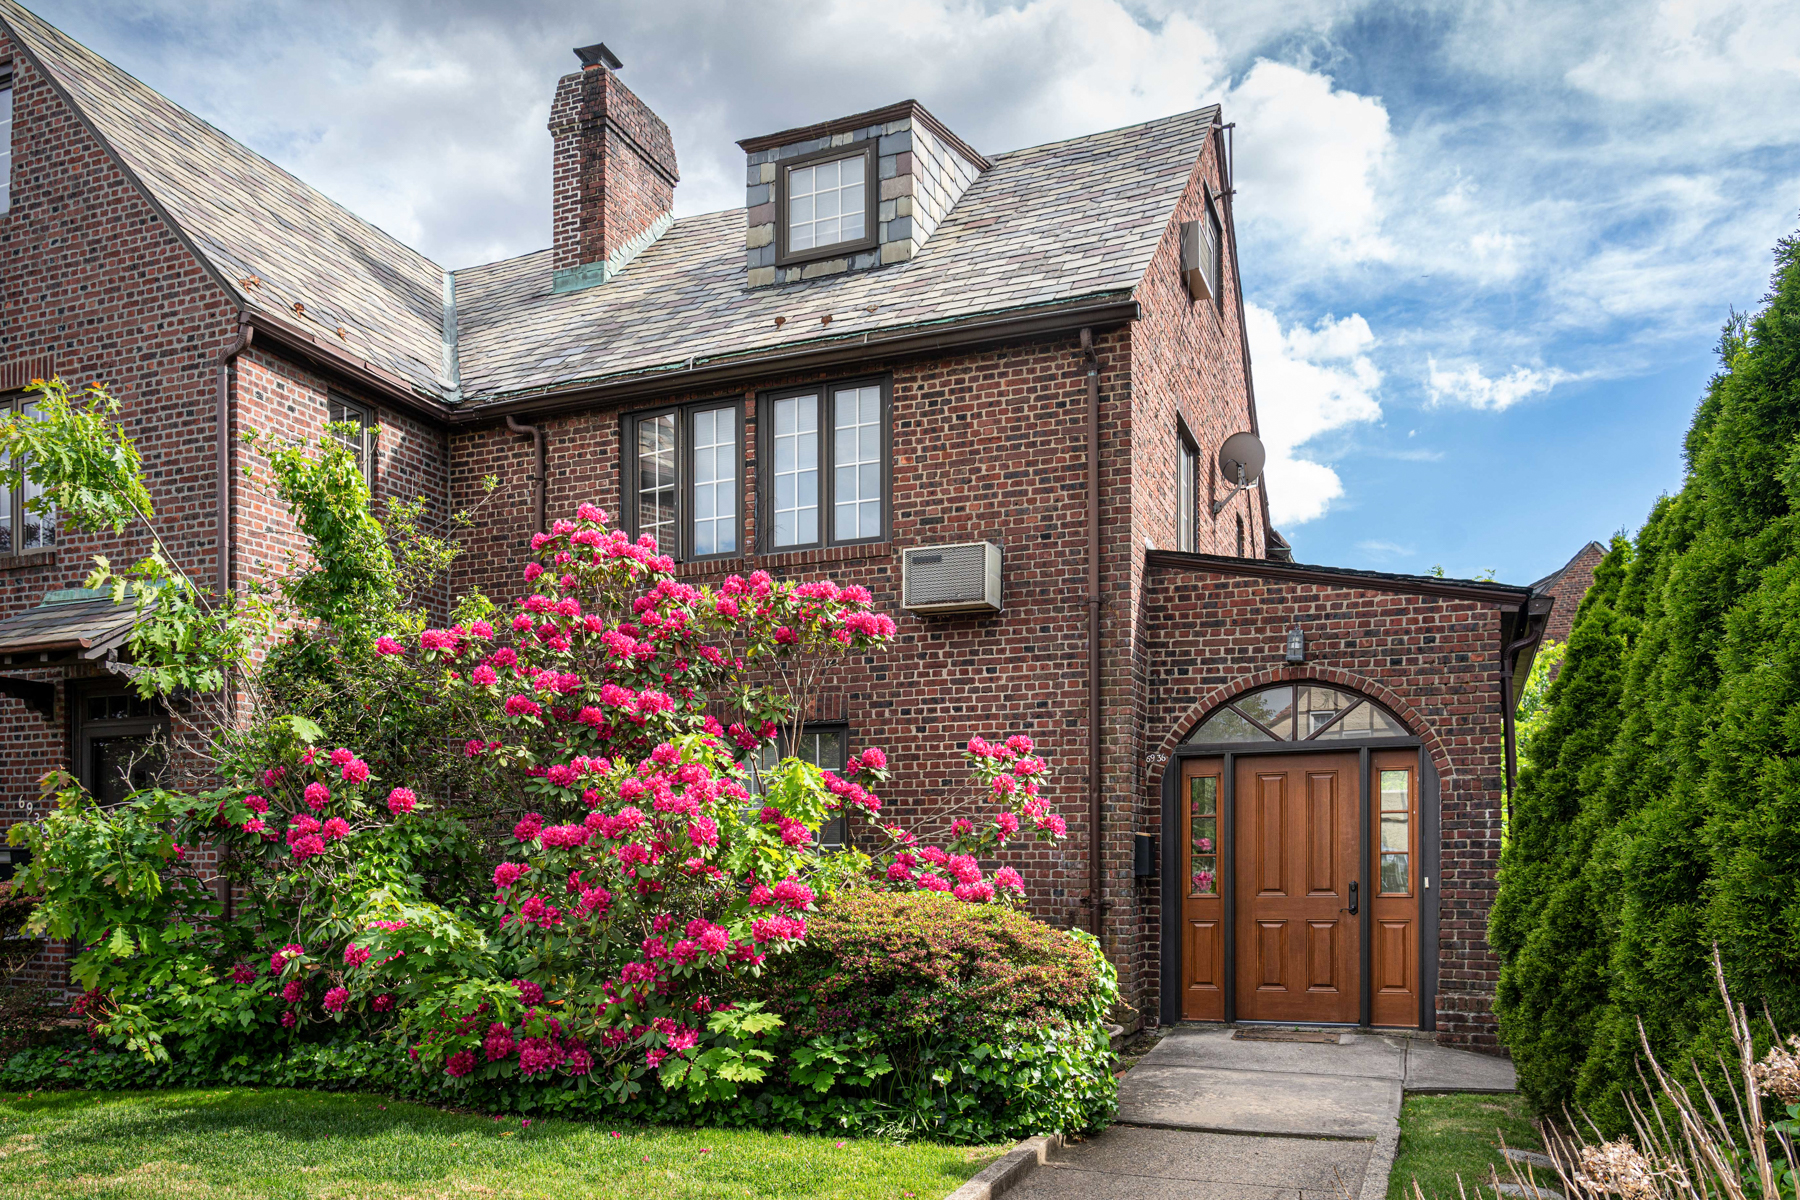 """Single Family Homes for Active at """"ENGLISH TUDOR CLASSIC"""" 69-36 Fleet Street, Forest Hills, New York 11375 United States"""